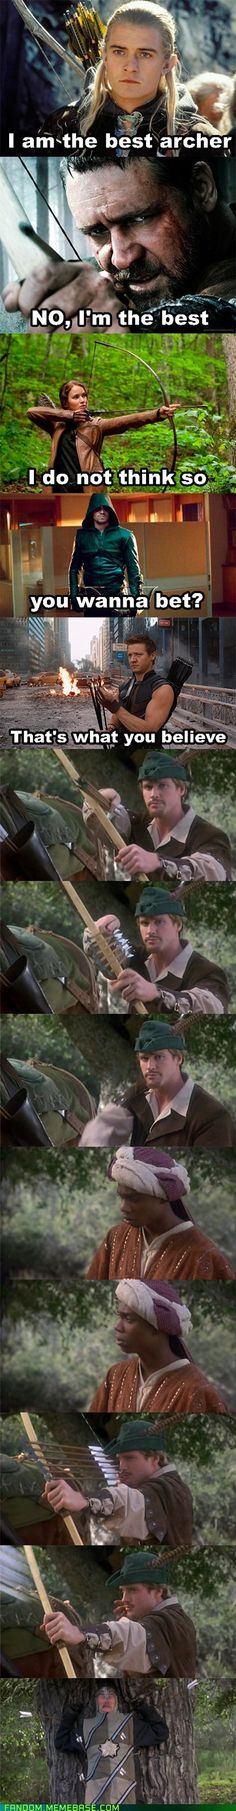 Who's the best archer? I just realized Robin Hood (Russel Crowe) said he was the best and then the other Robin Hood (I din't know the actor's name) outdid him. So Robin Hood outdid Robin Hood...I don't get that logic.